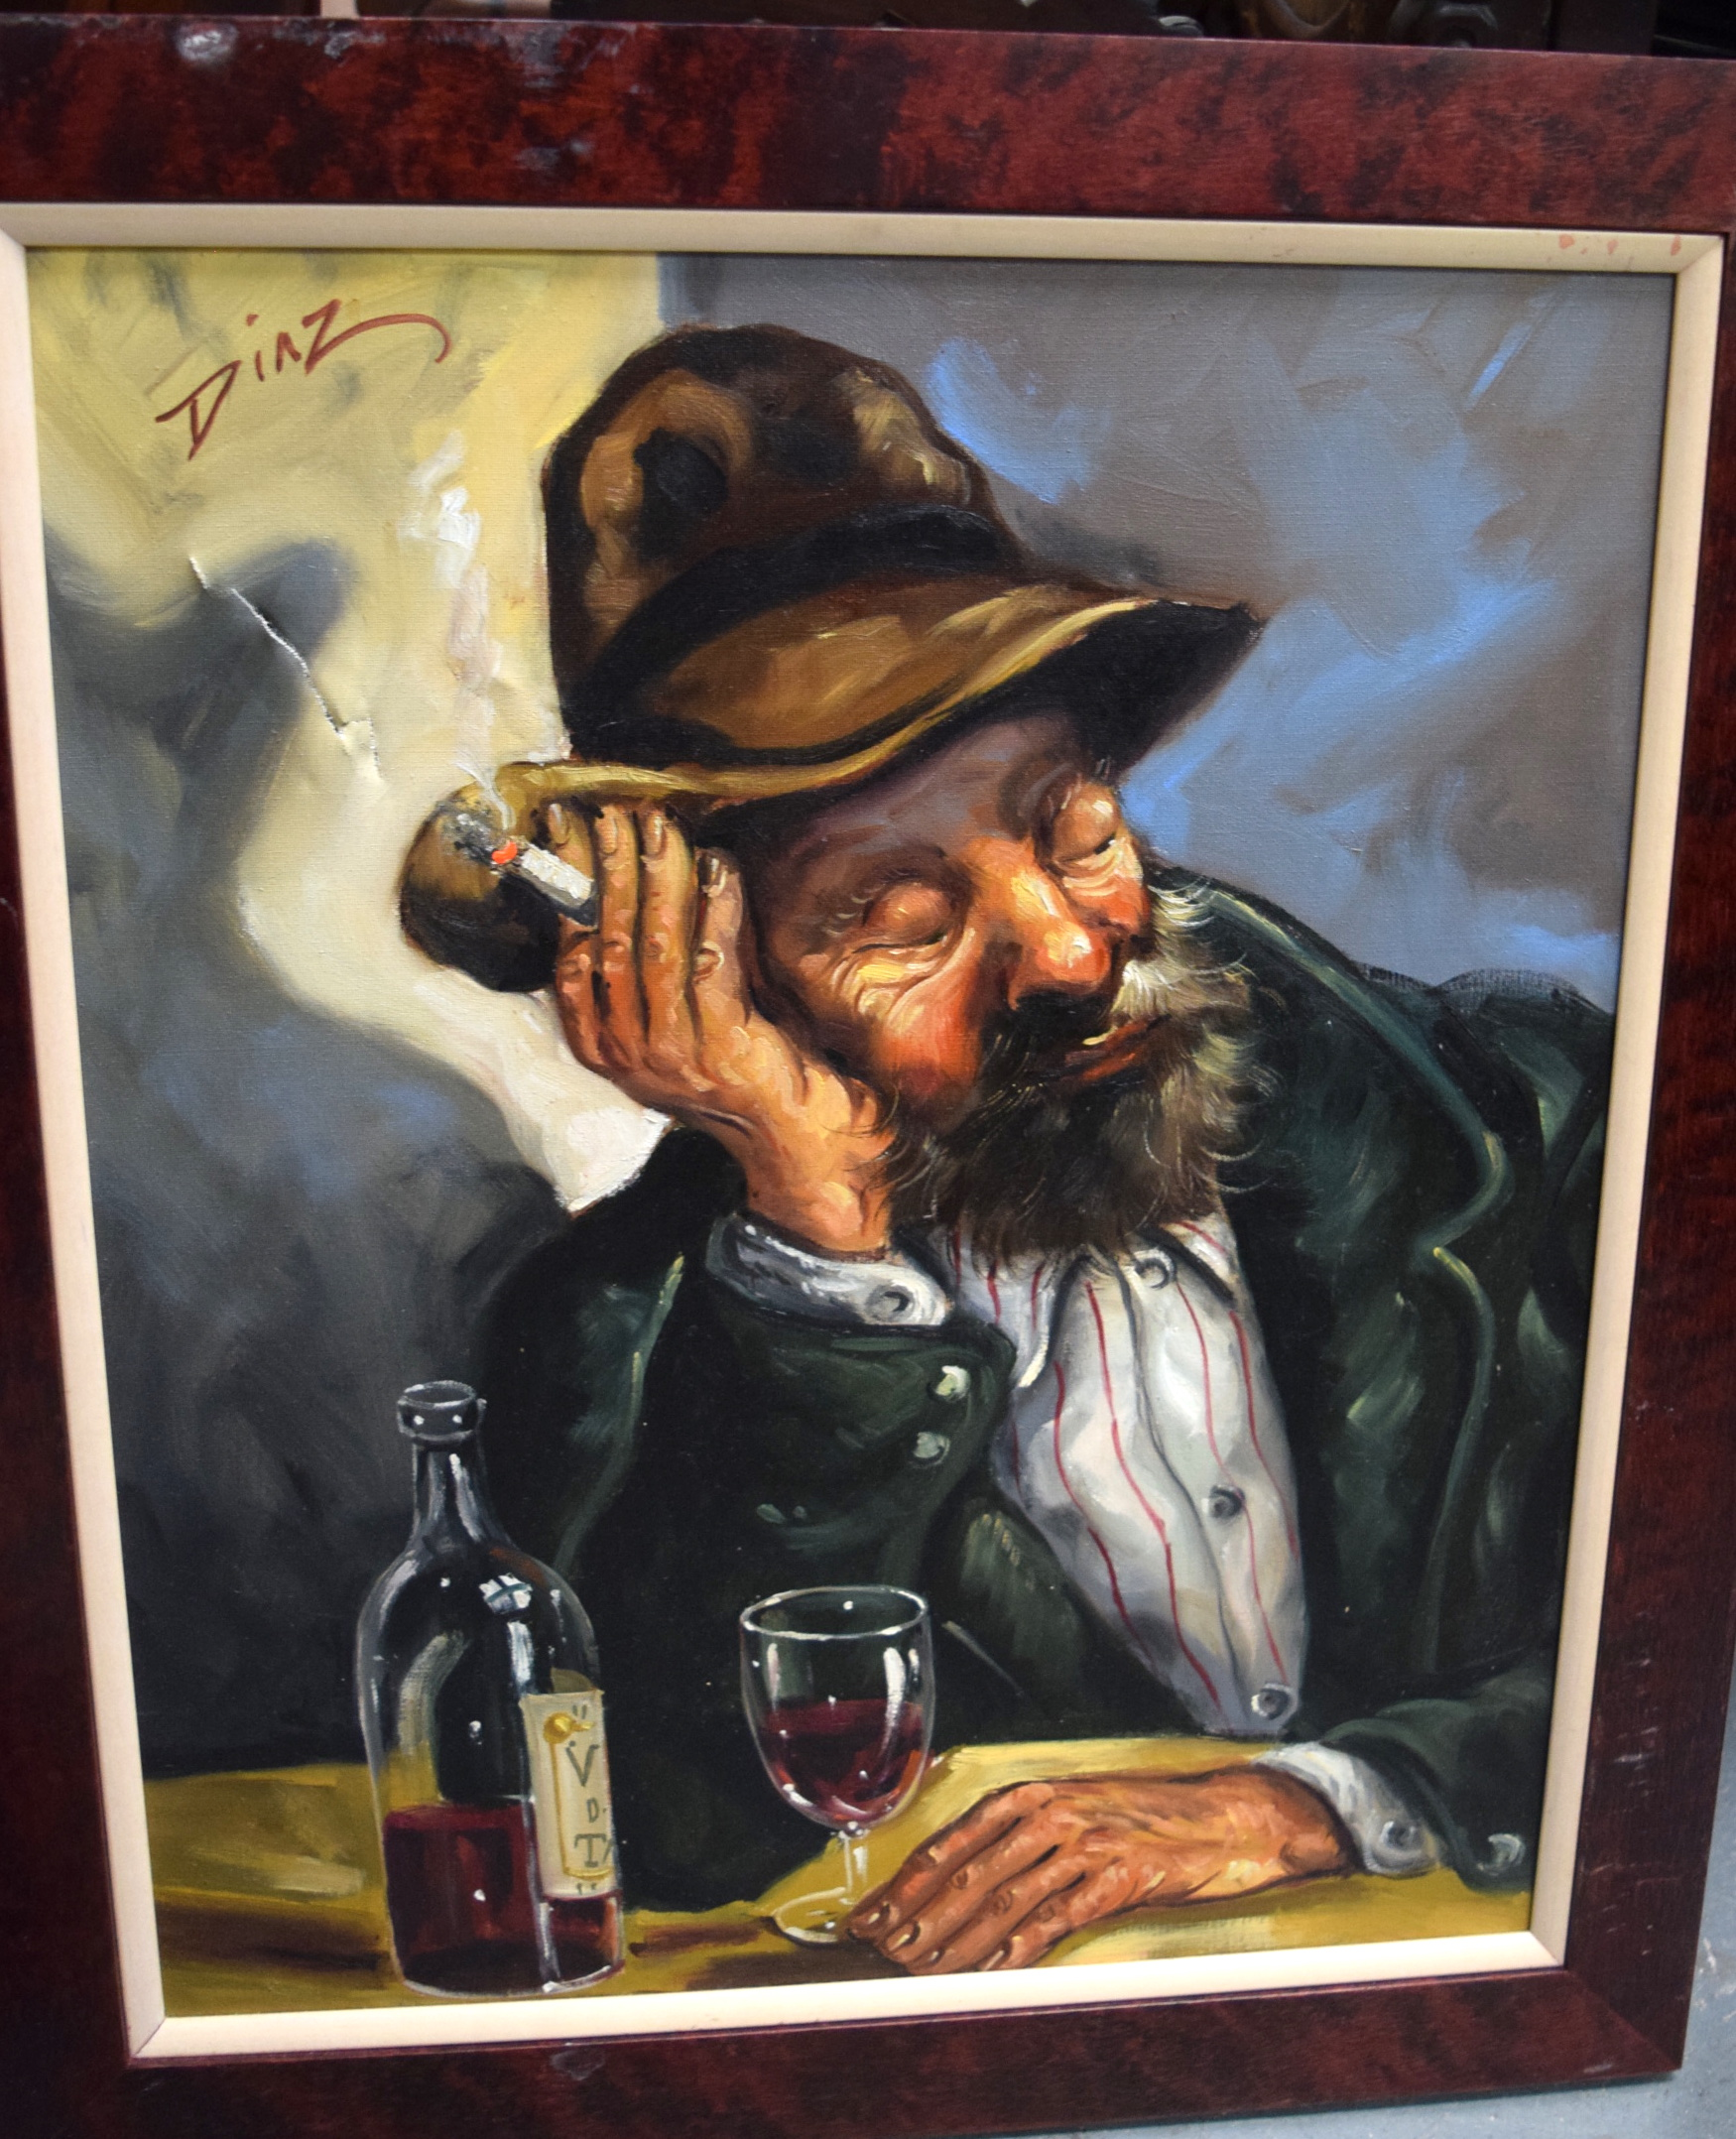 Lot 2788 - DINZ 20th century) FRAMED OIL ON CANVAS, signed, portrait of a bearded male. 51.5 cm x 42 cm.